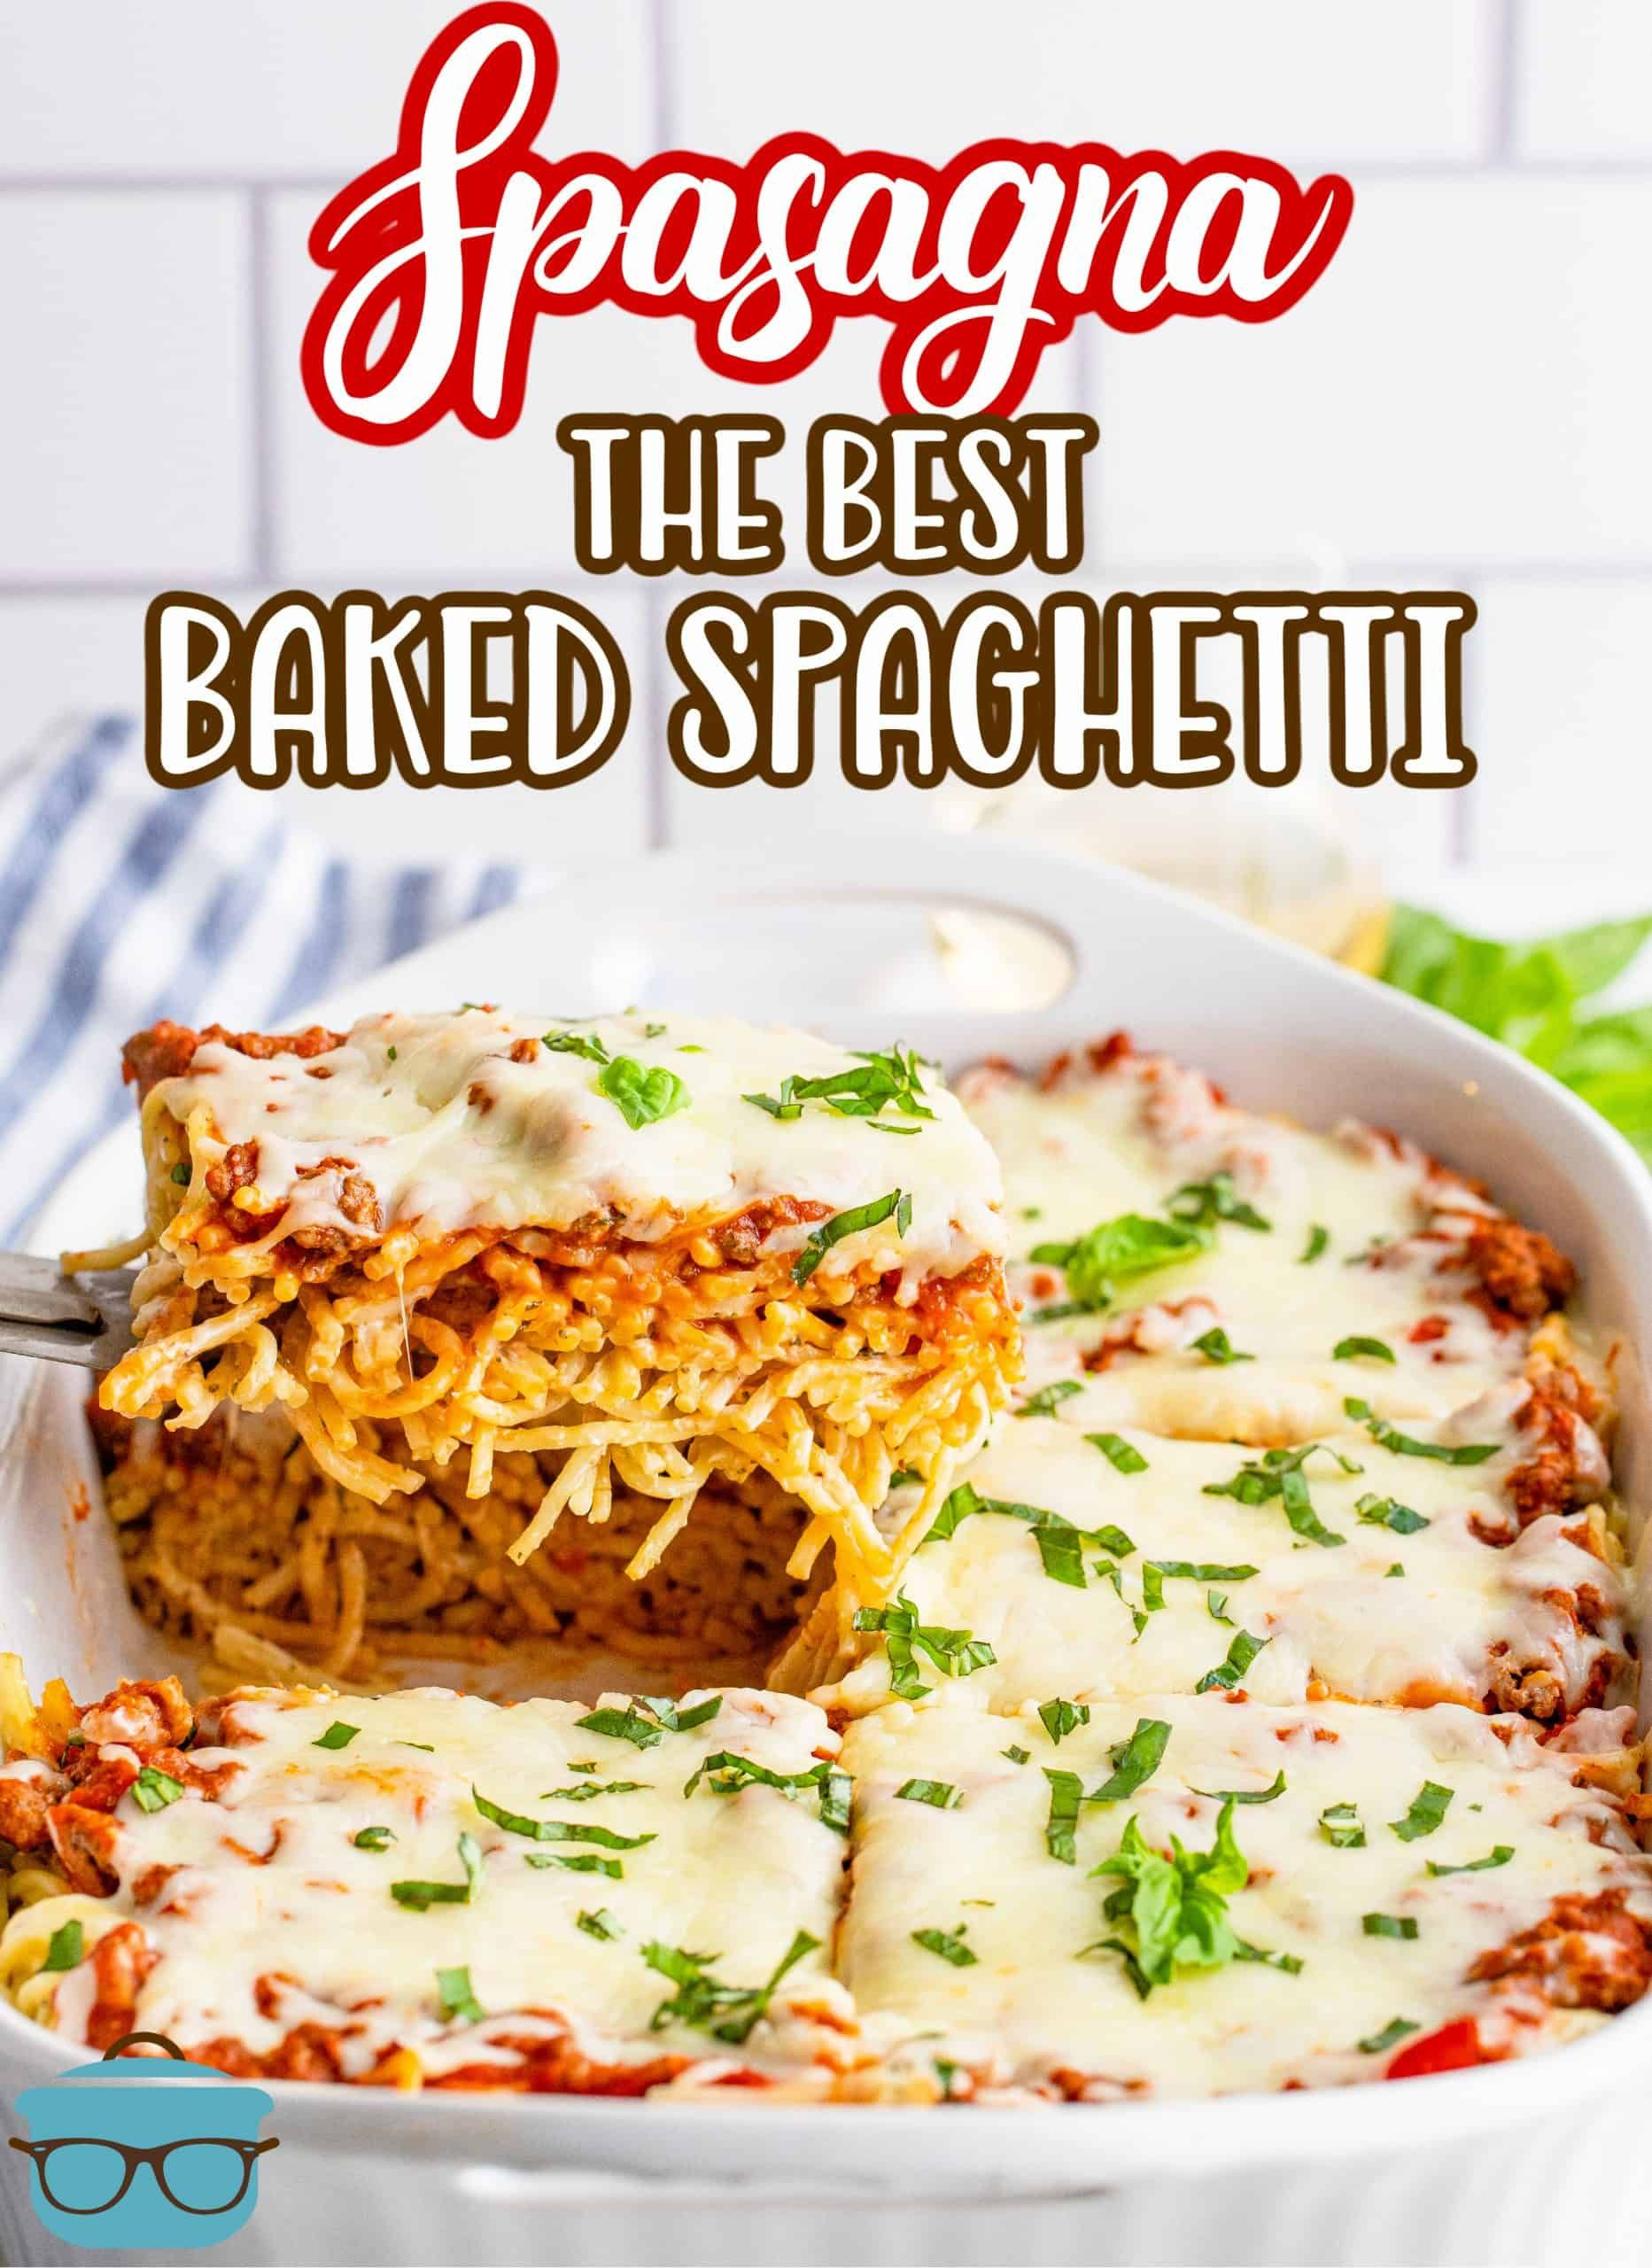 The Best Baked Spaghetti Recipe In 2021 Baked Spaghetti Interesting Food Recipes Easy Supper Recipes